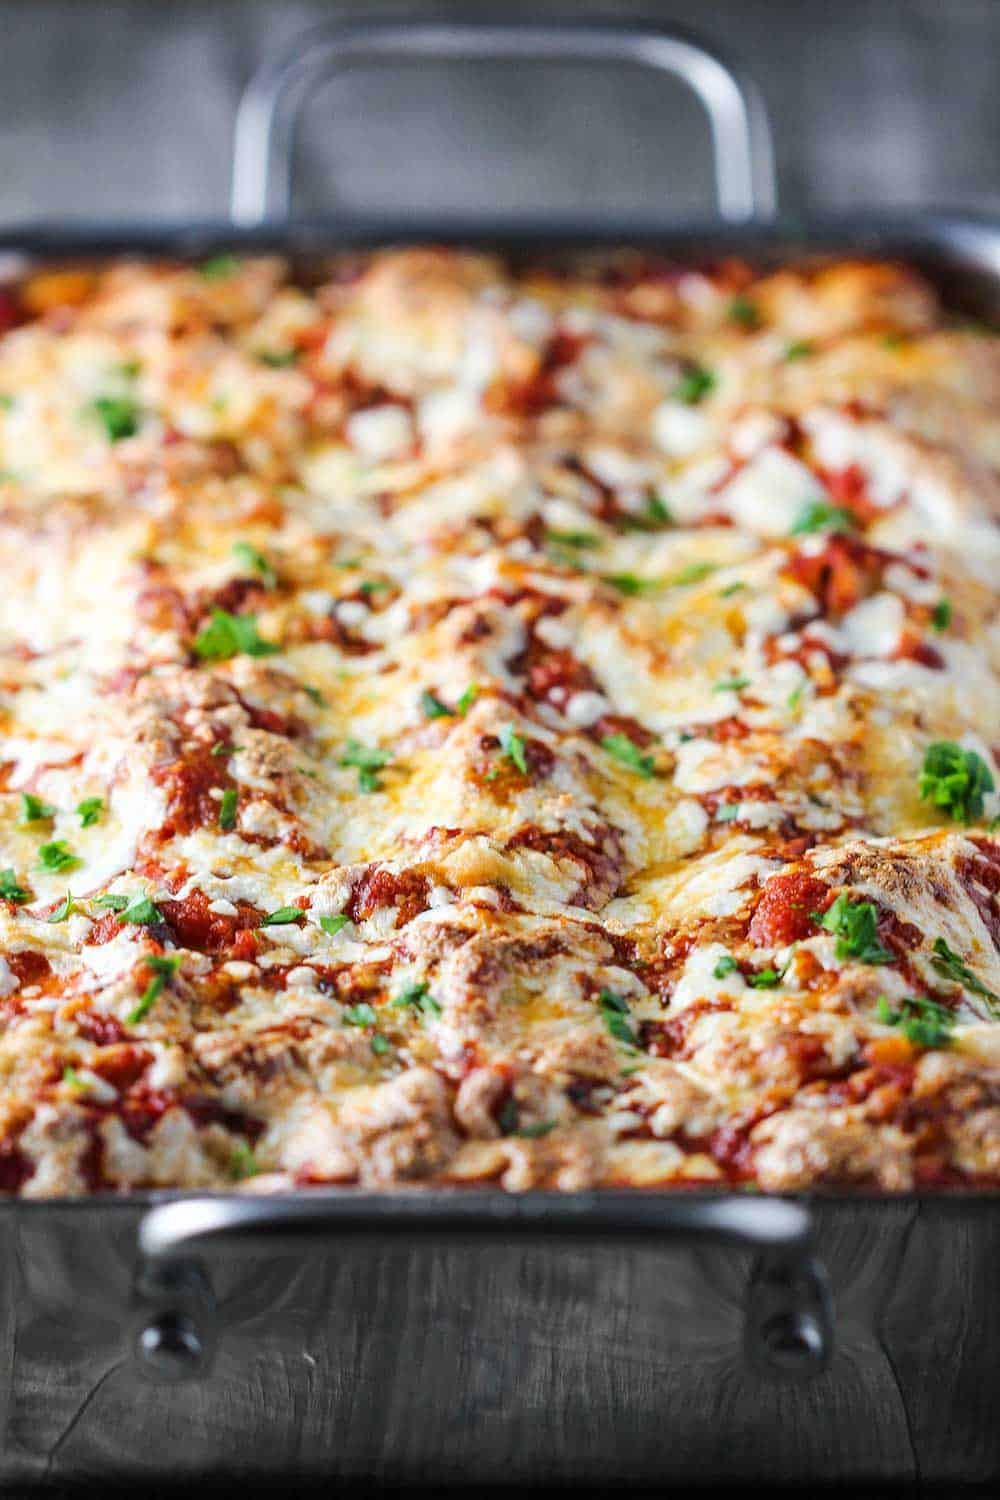 A pan of baked classic meat lasagna